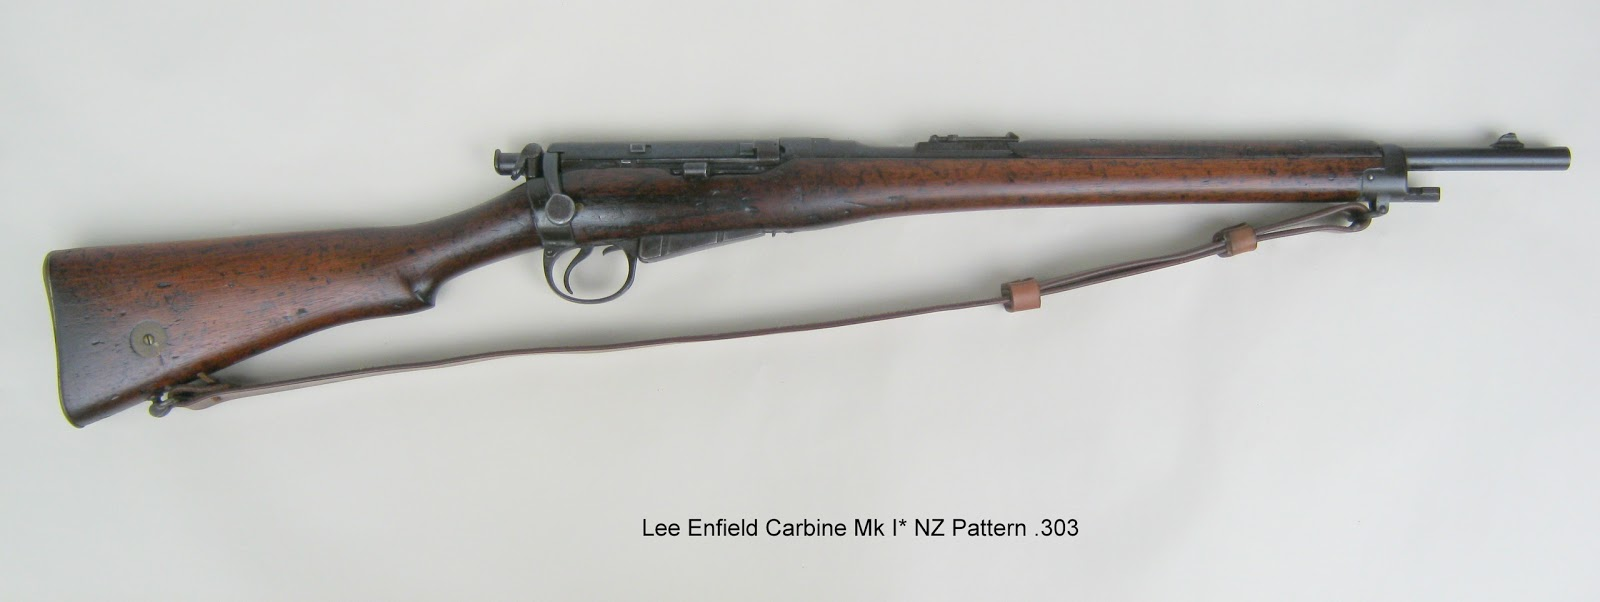 This lead to the introduction of the Rifle, short, magazine, Lee Enfield in  LOC 11715 dated December 1902.